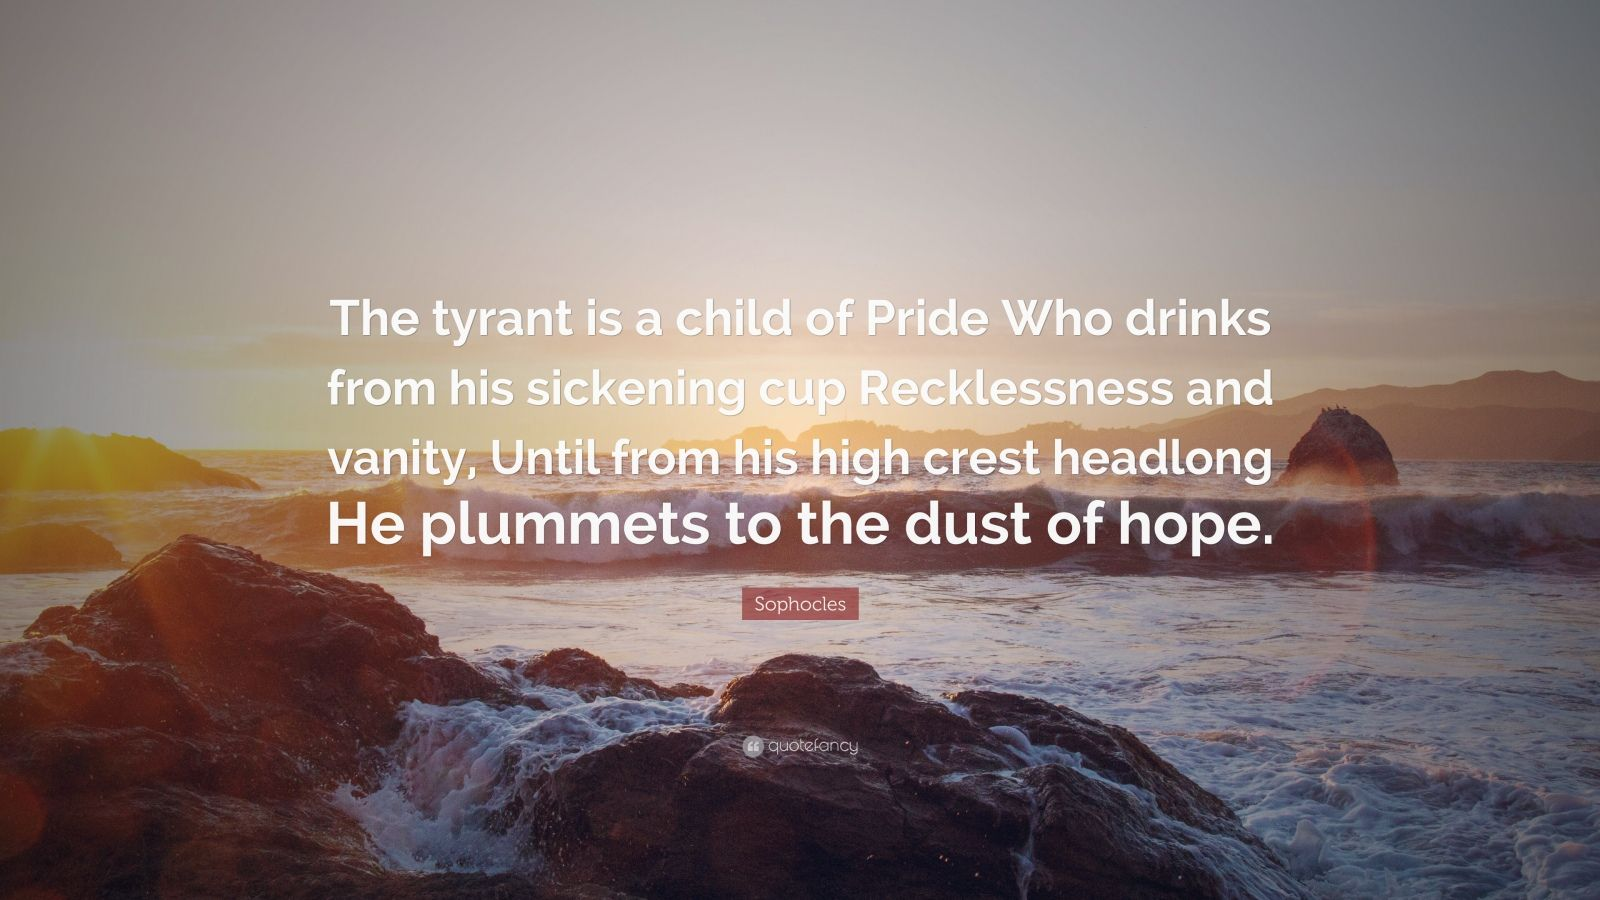 """Sophocles Quote: """"The tyrant is a child of Pride Who drinks from his sickening cup Recklessness and vanity, Until from his high crest headlong He plummets to the dust of hope."""""""